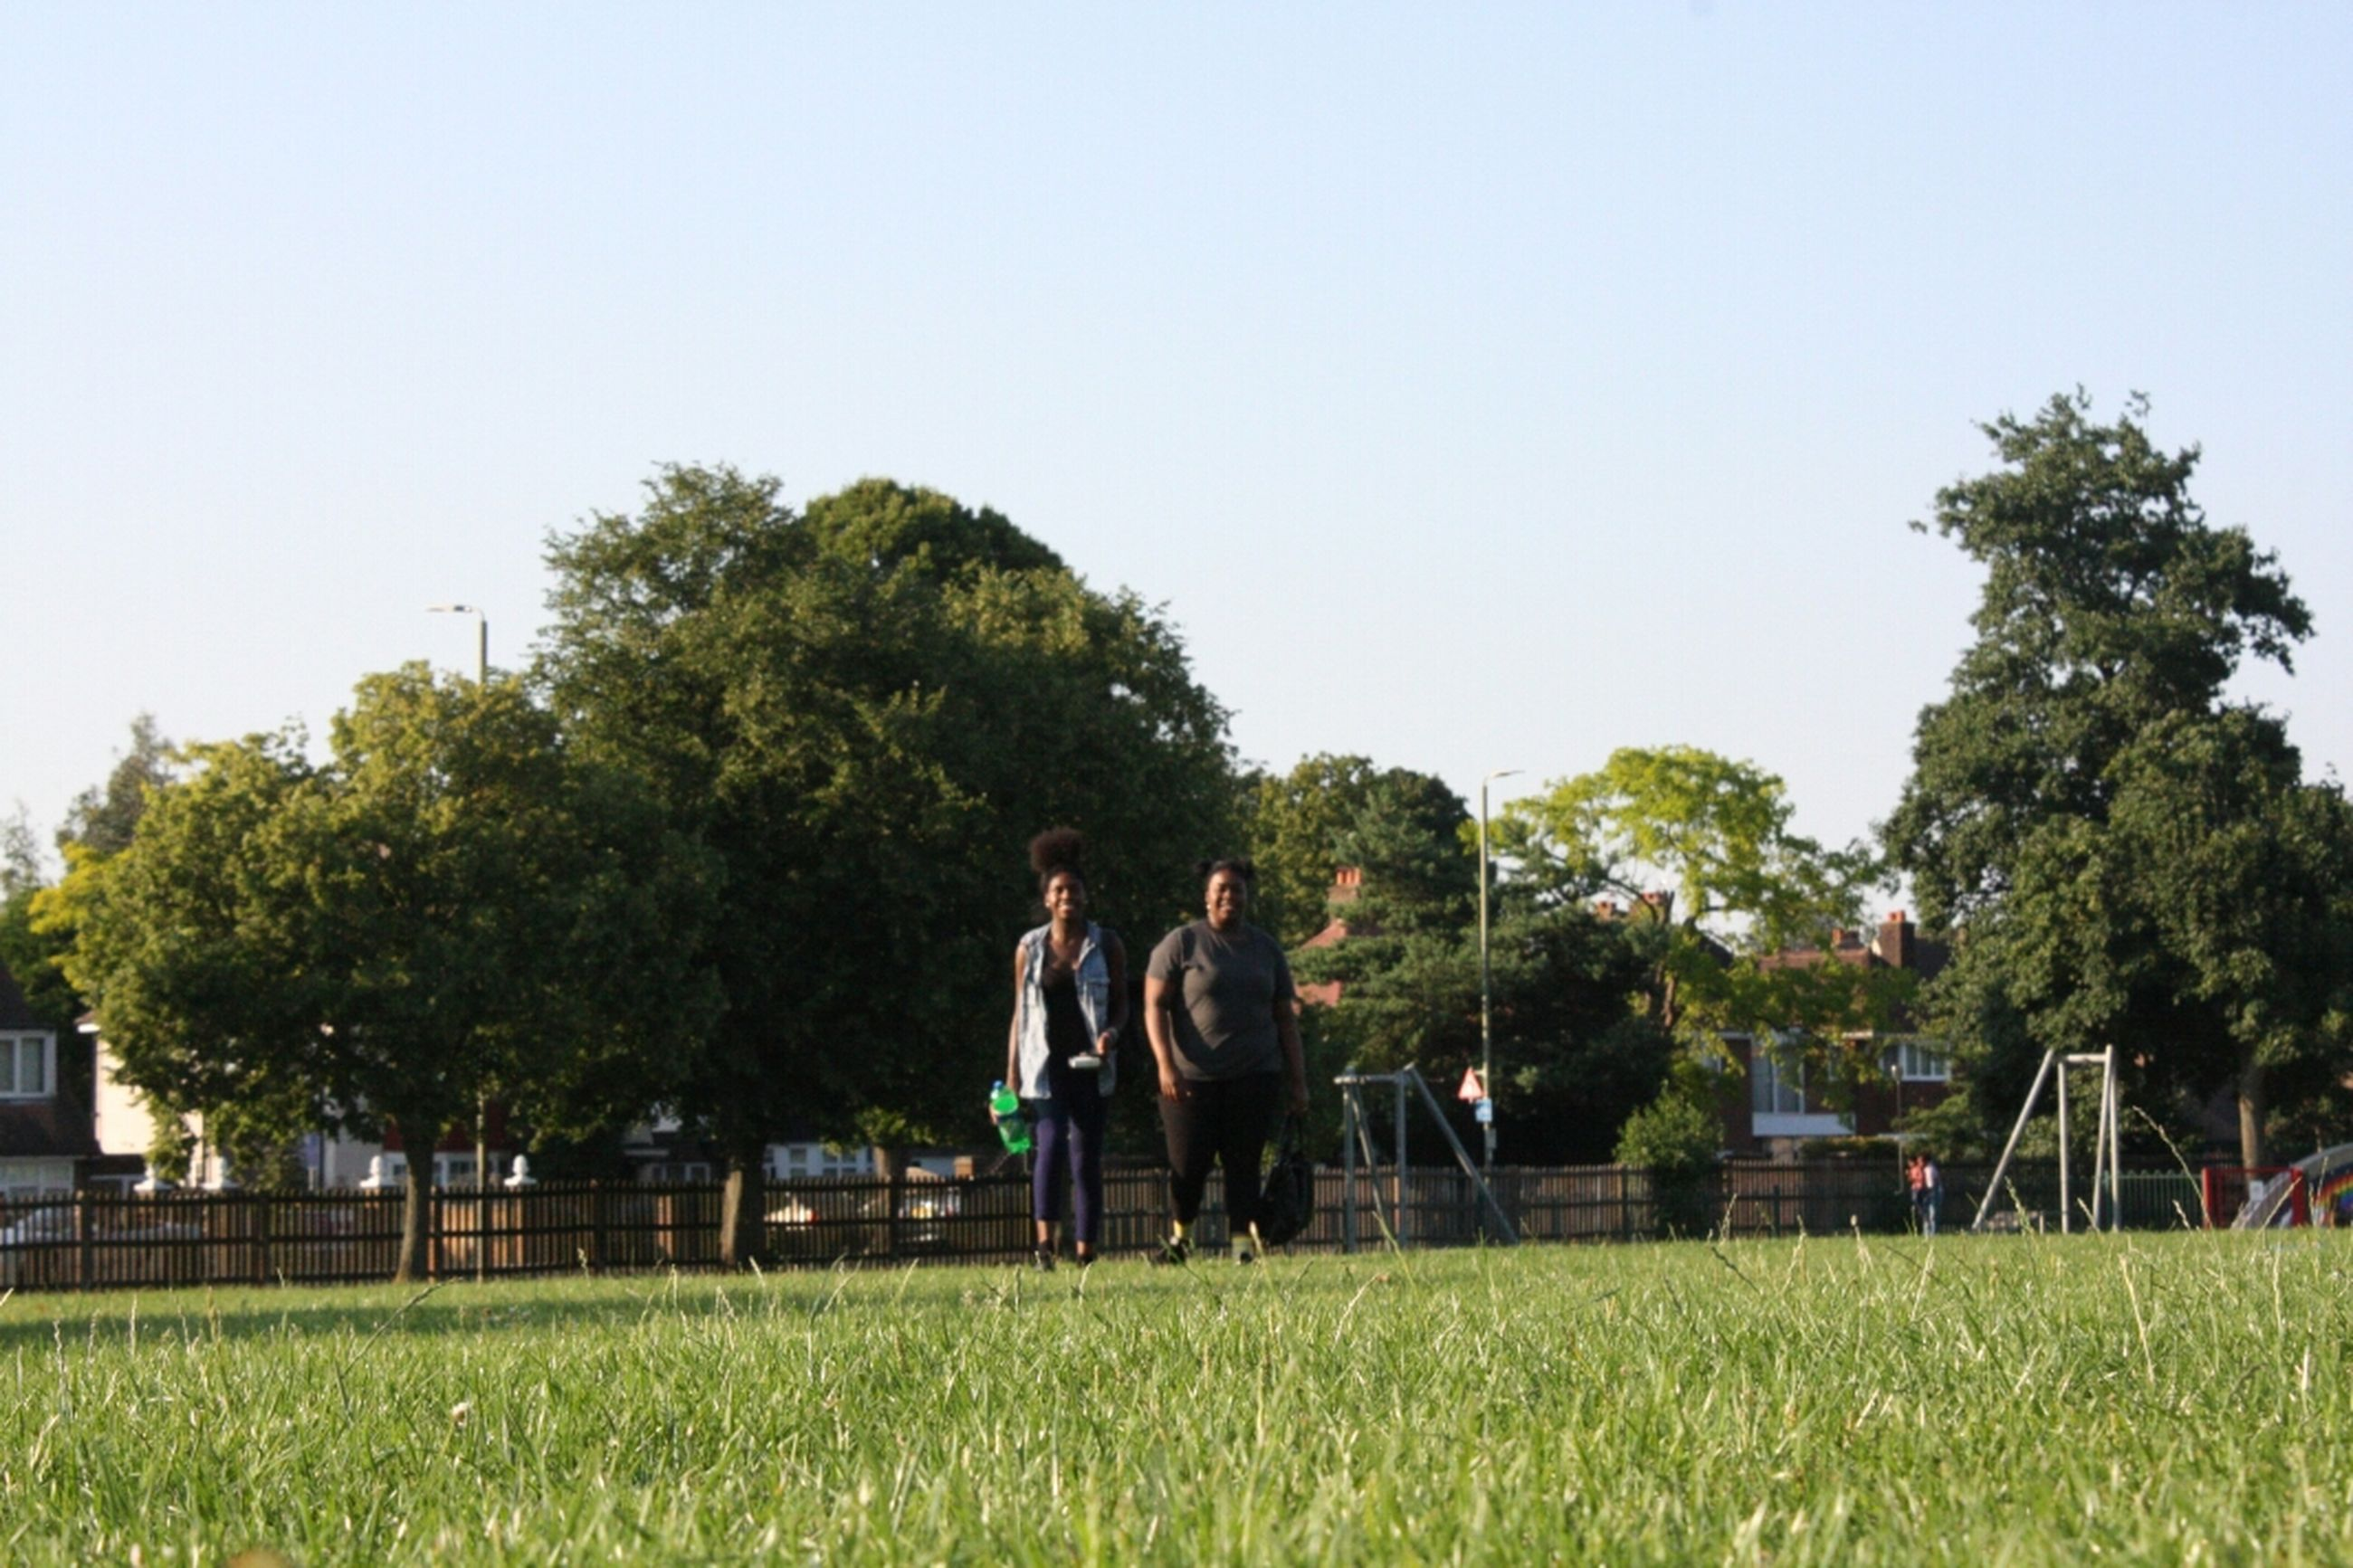 clear sky, grass, tree, men, lifestyles, leisure activity, copy space, field, person, togetherness, green color, growth, rear view, bonding, nature, full length, landscape, walking